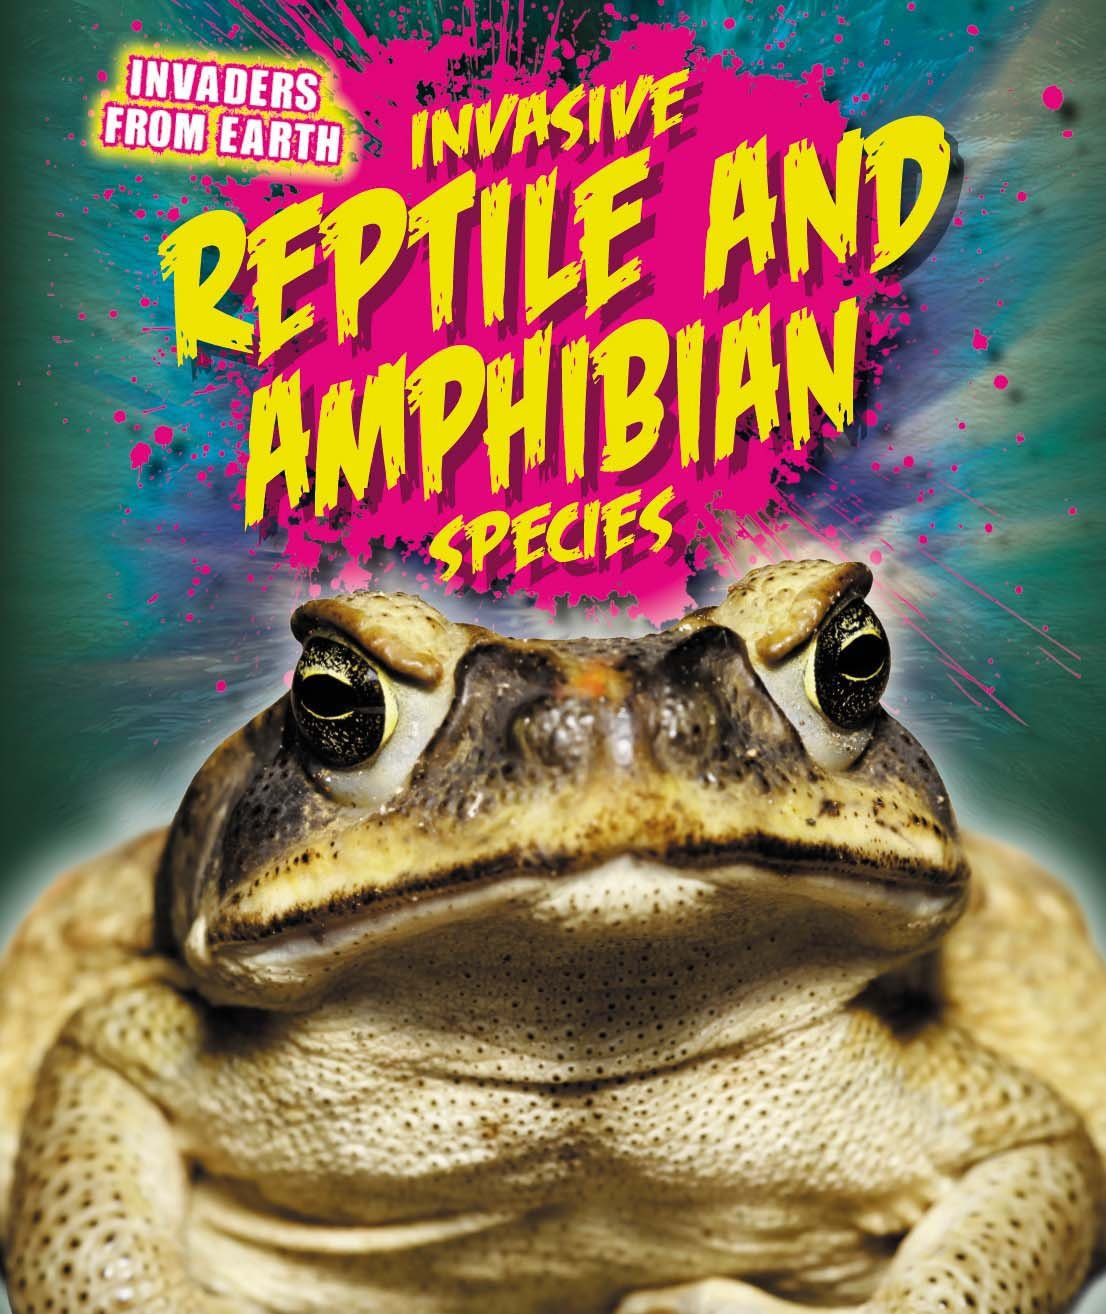 Download Invasive Reptile and Amphibian Species (Invaders from Earth) ebook